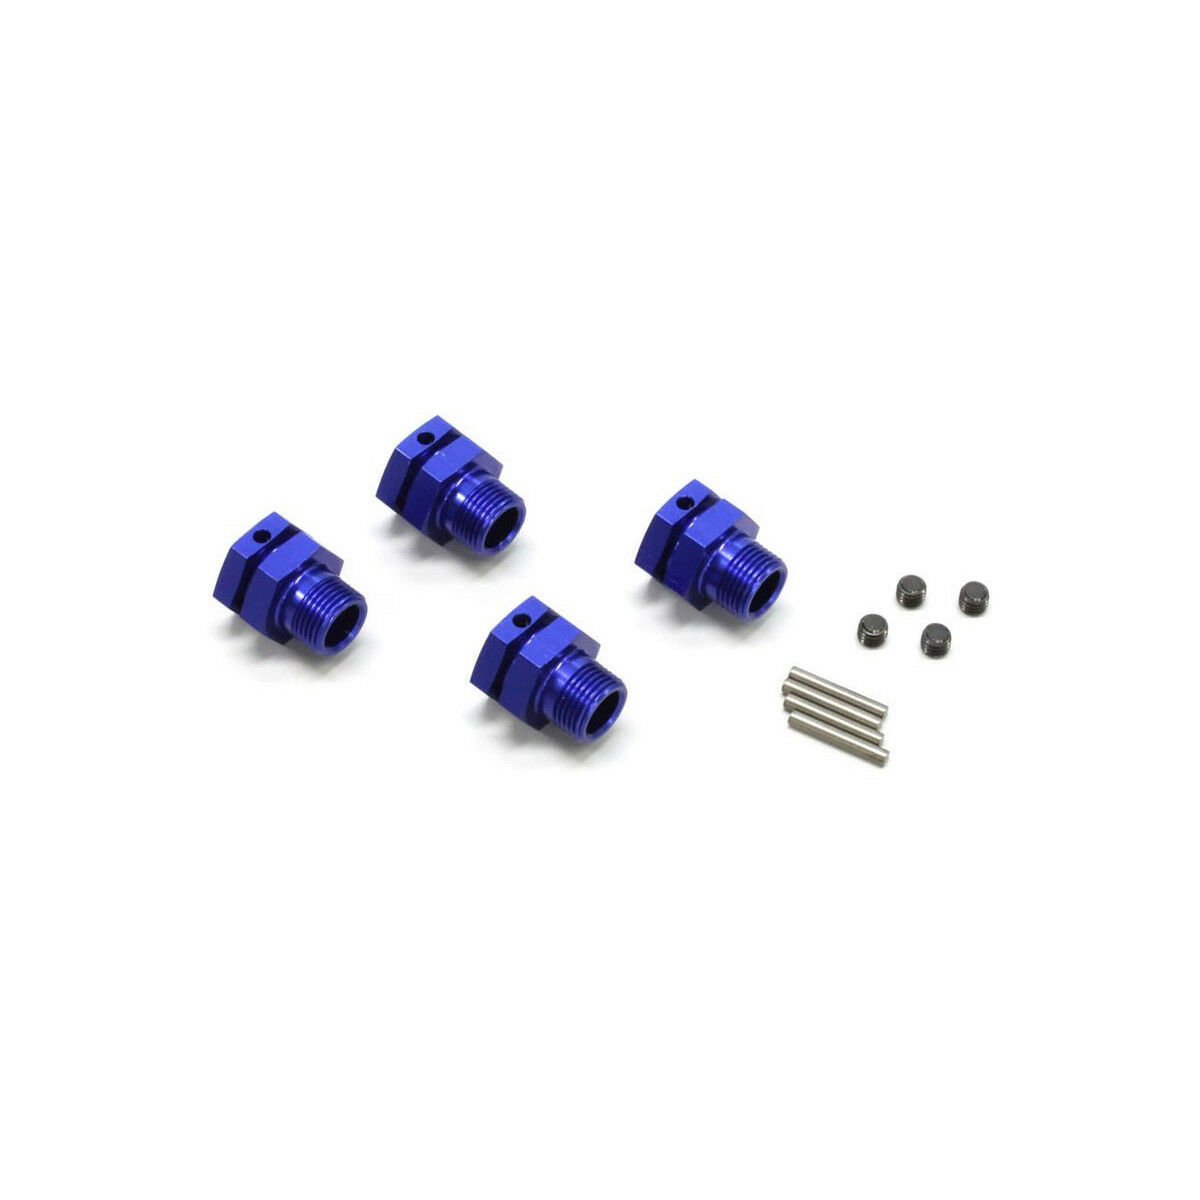 Hex Hub Middle bluee Set of 4 Kyosho Ifw-327bl